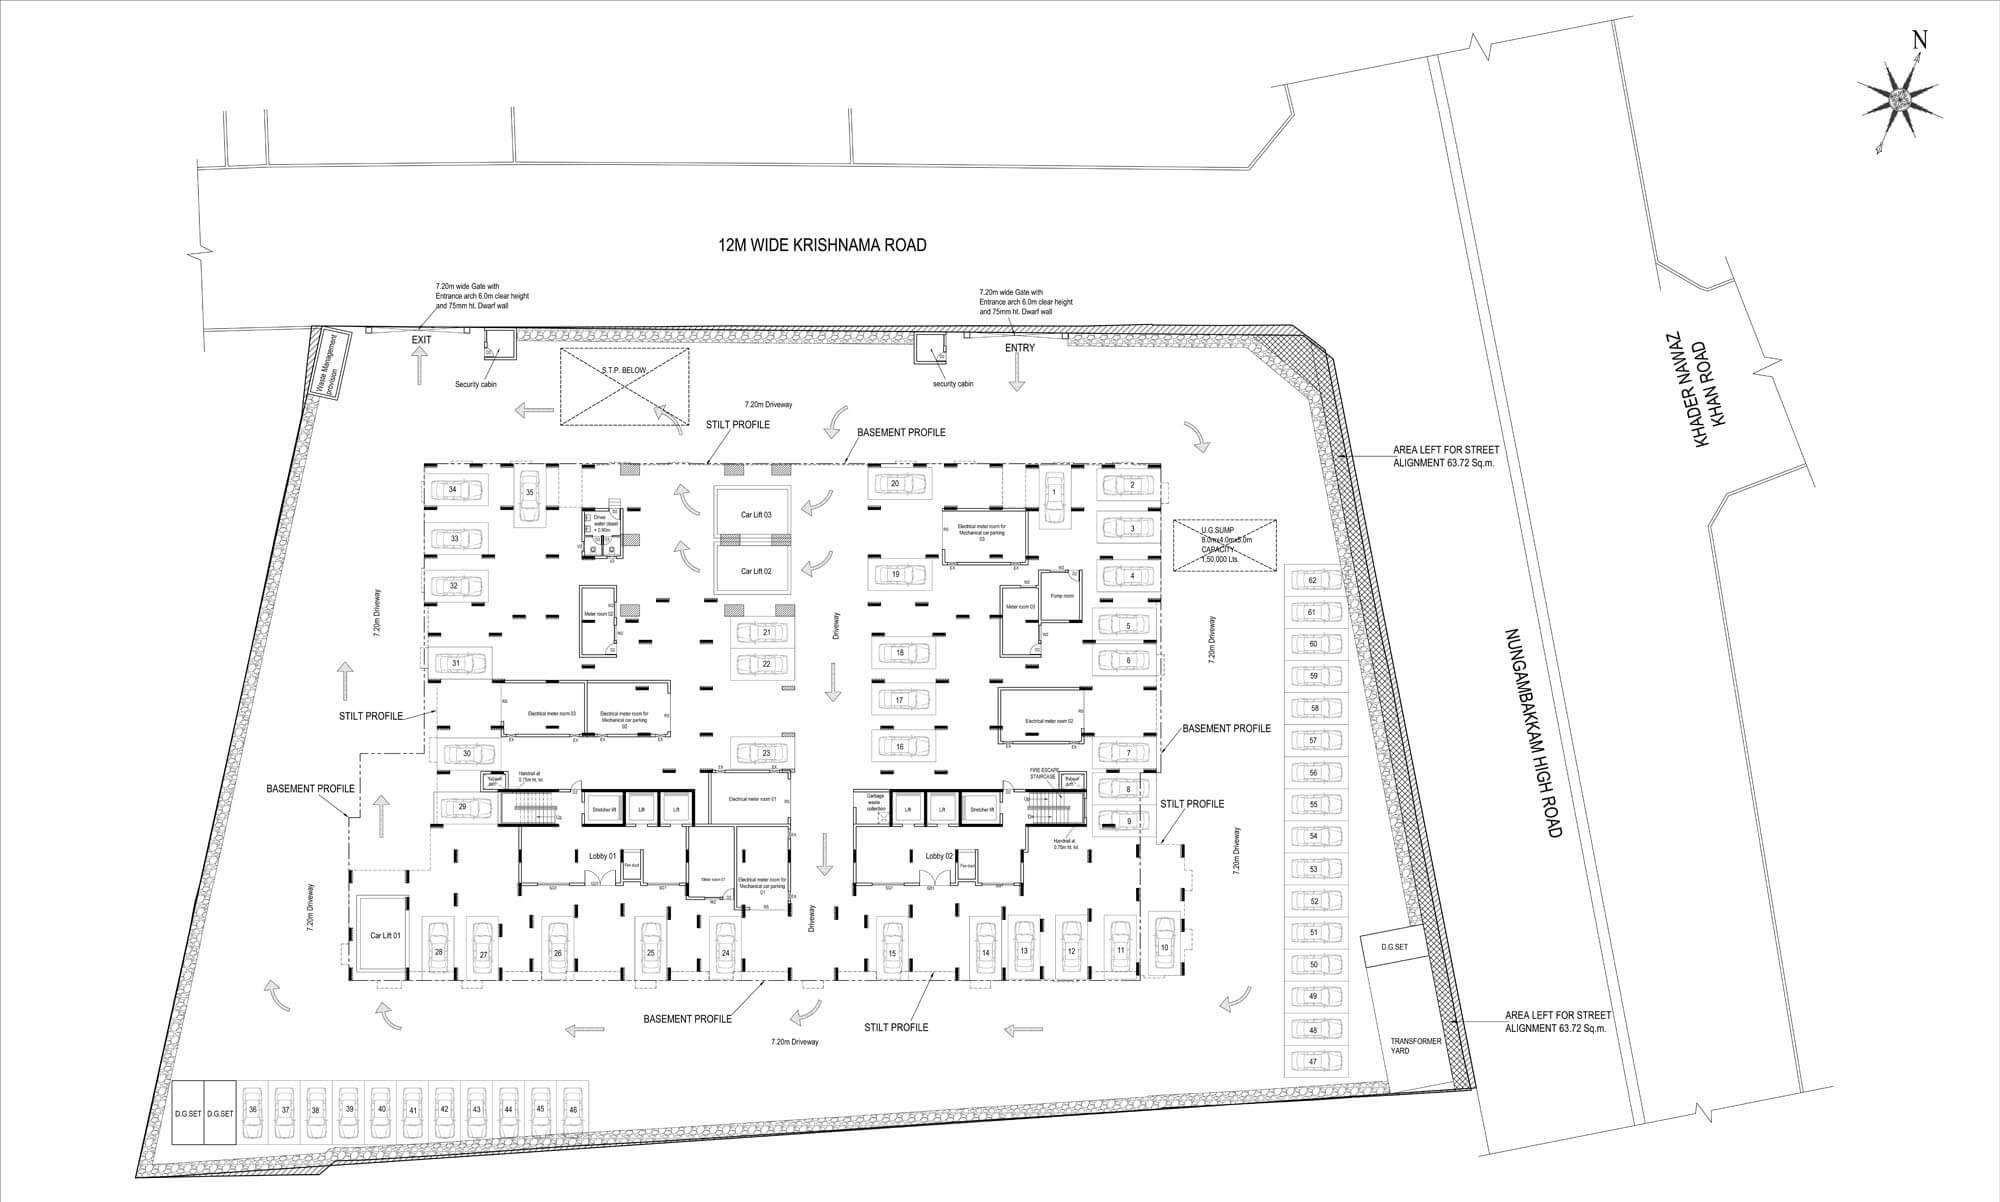 Notting Hill Site Plan Image